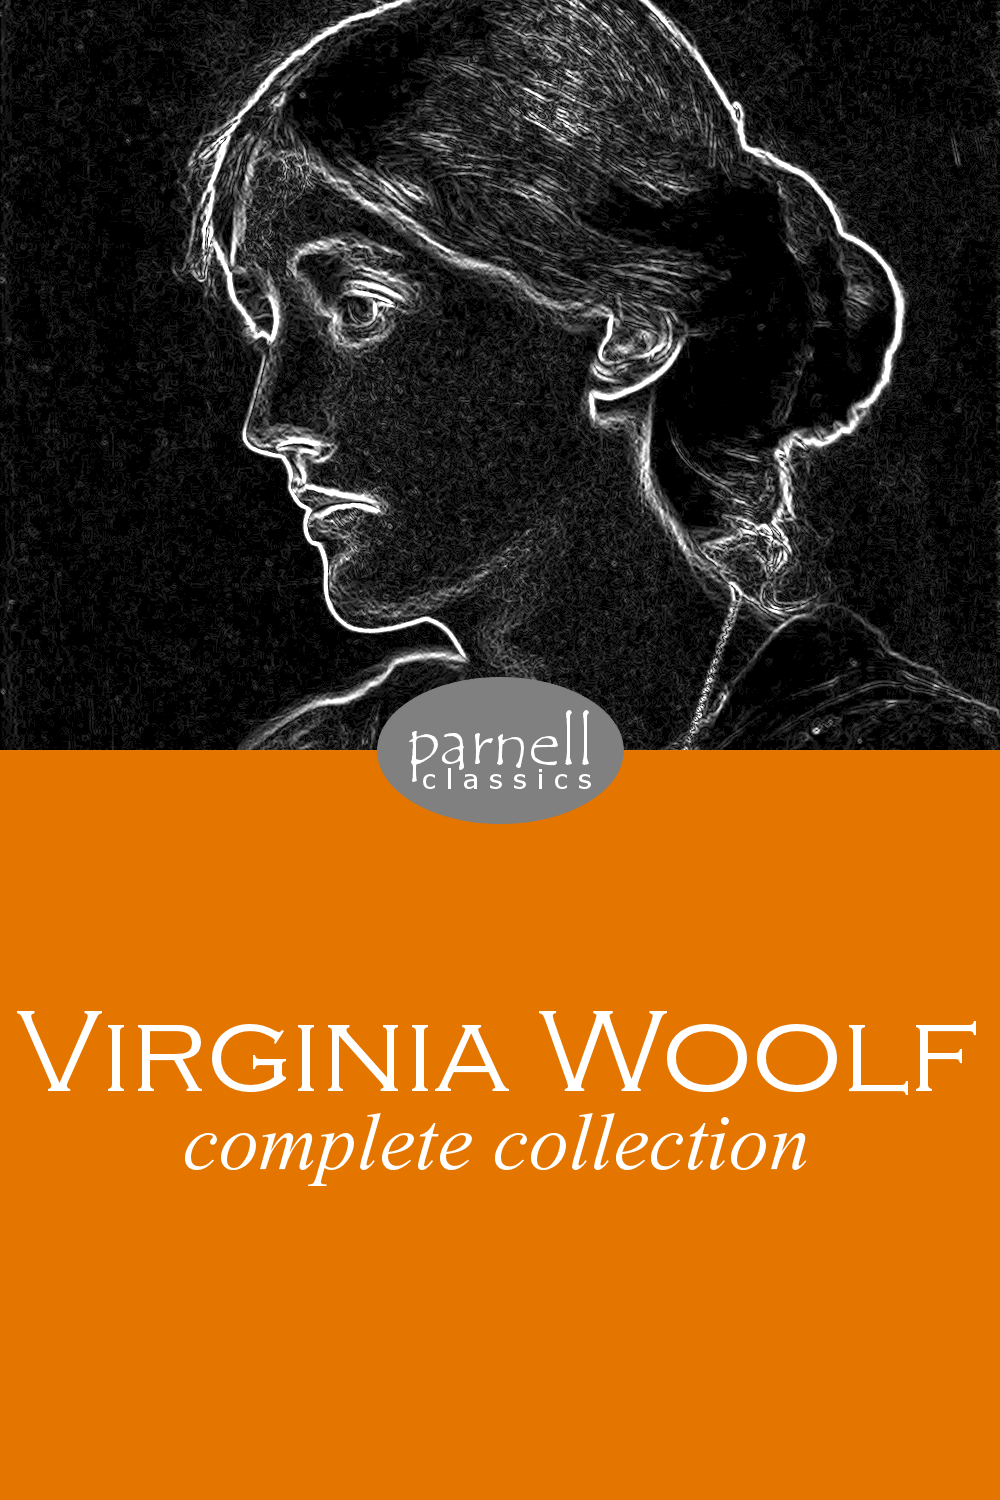 Virginia Woolf Complete Collection